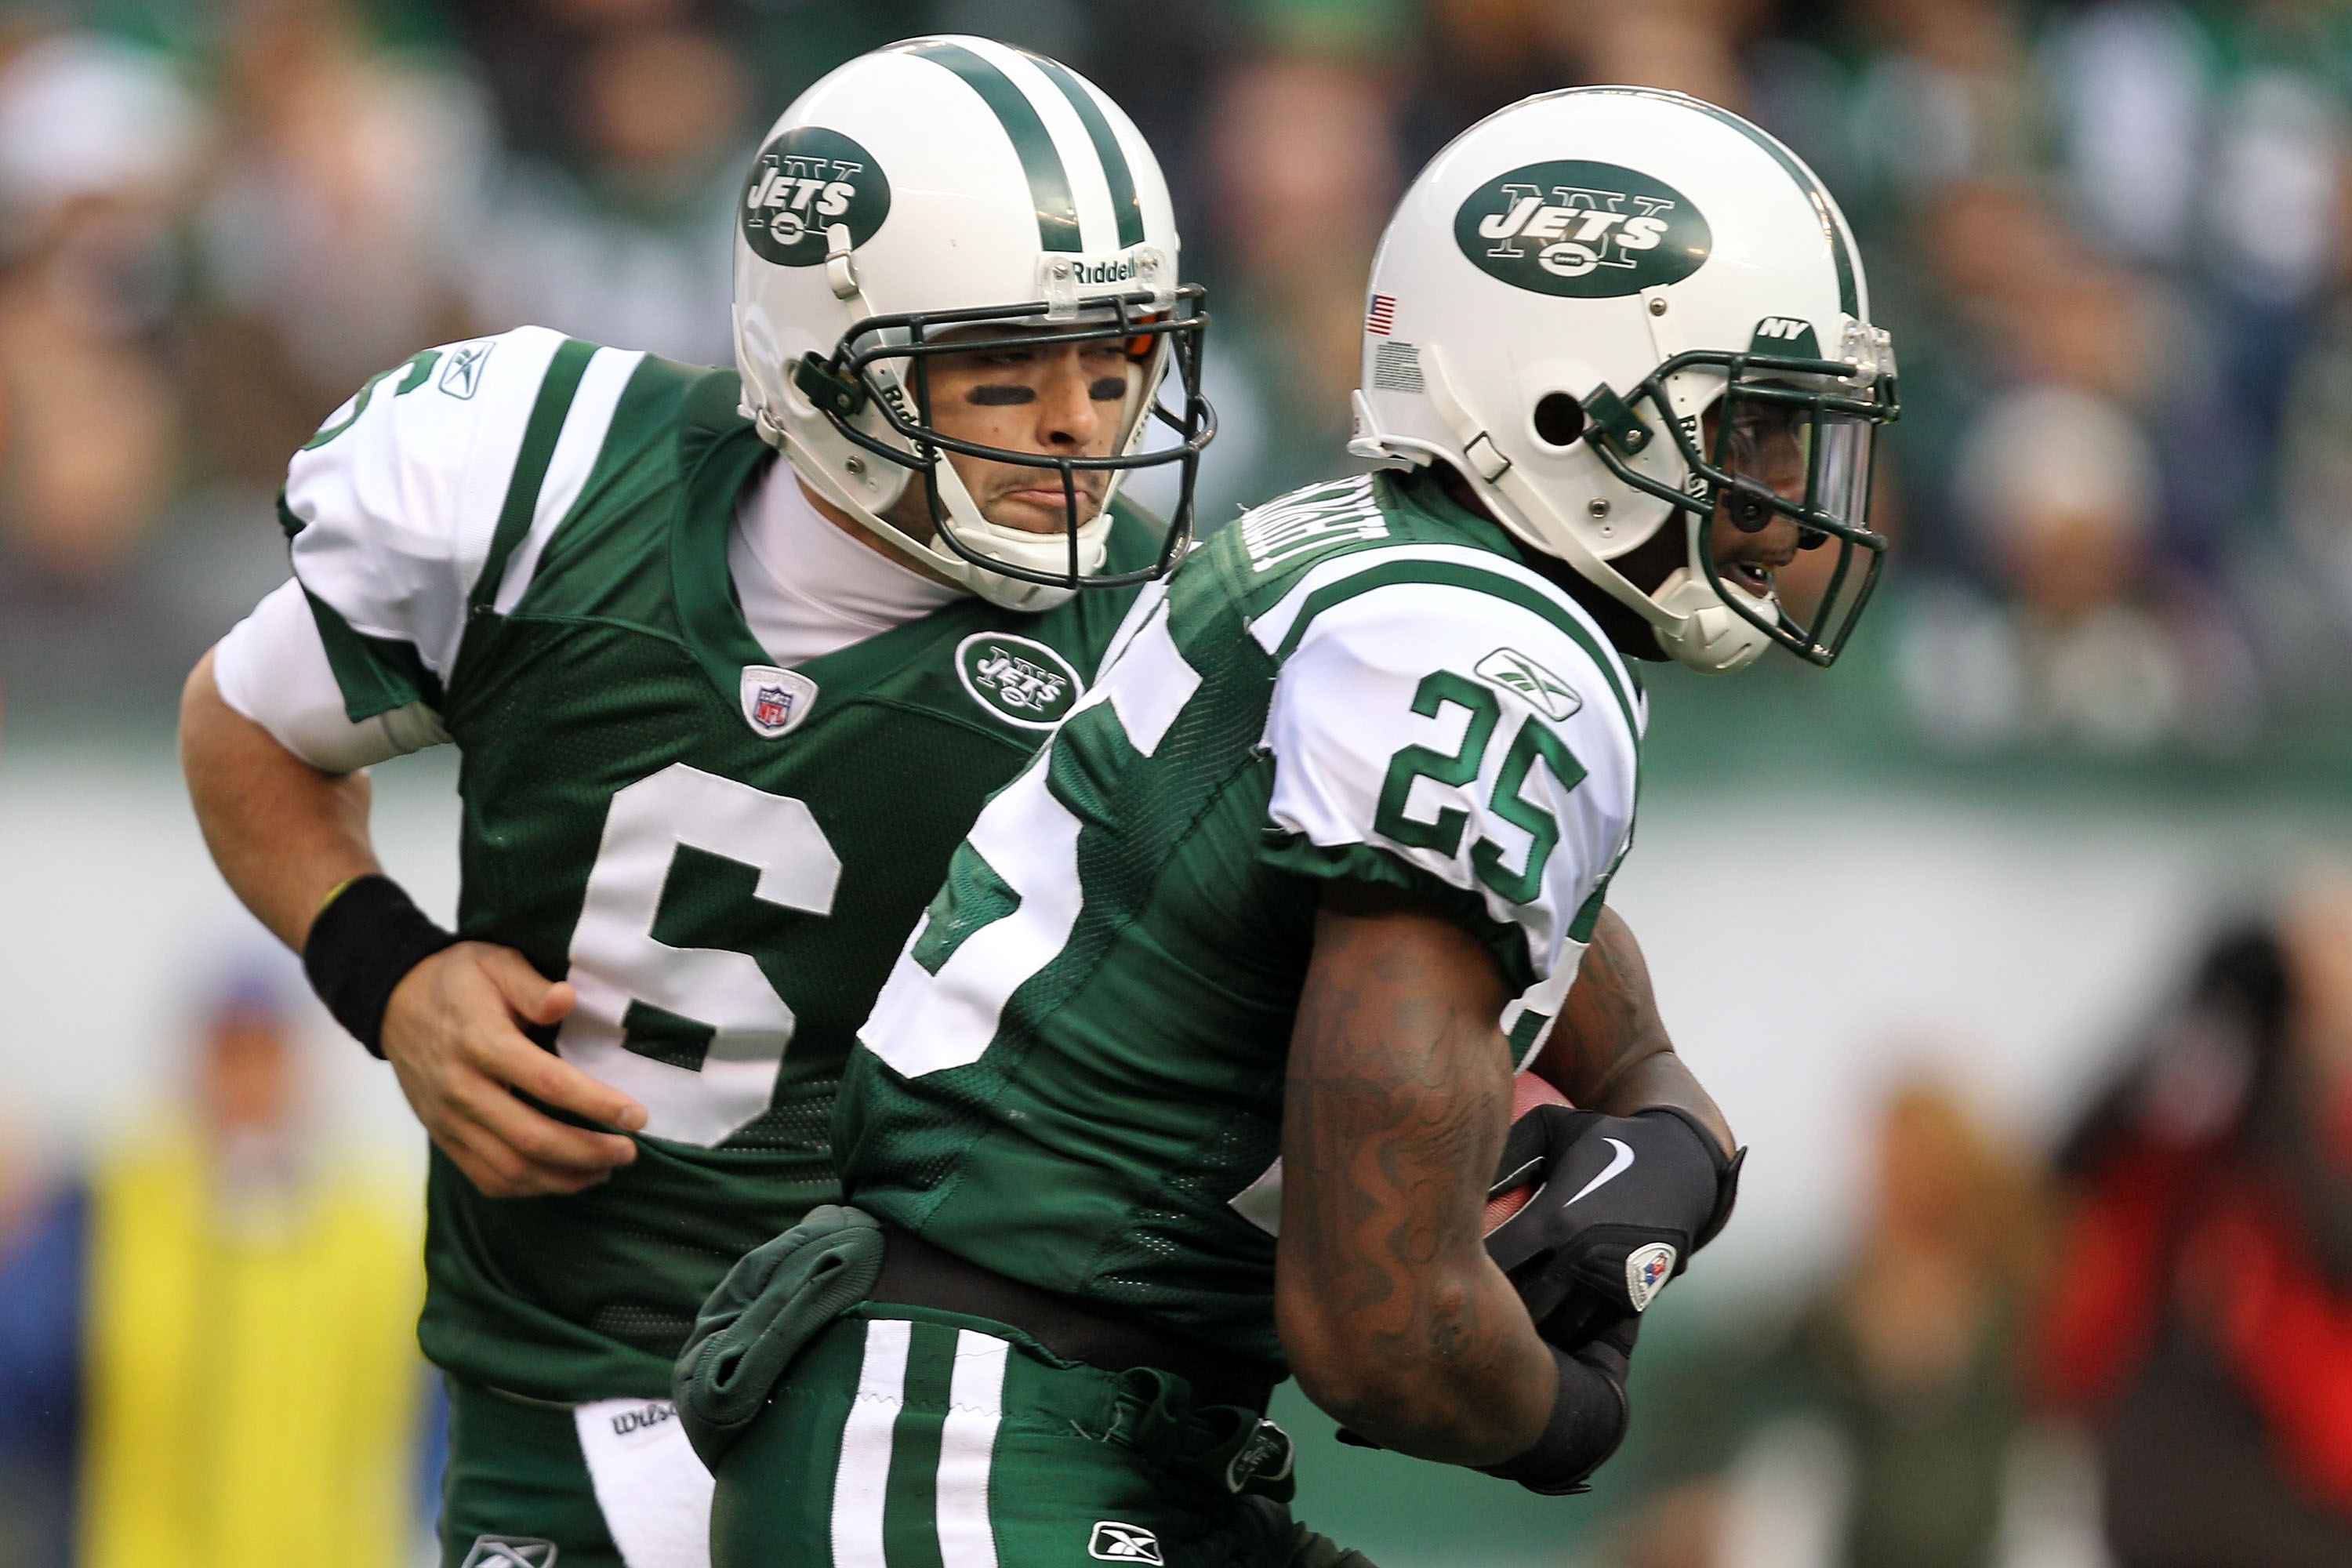 EAST RUTHERFORD, NJ - JANUARY 02:  Mark Sanchez #6 hands off to Joe McKnight #25 of the New York Jets against the Buffalo Bills at New Meadowlands Stadium on January 2, 2011 in East Rutherford, New Jersey.  (Photo by Michael Heiman/Getty Images)